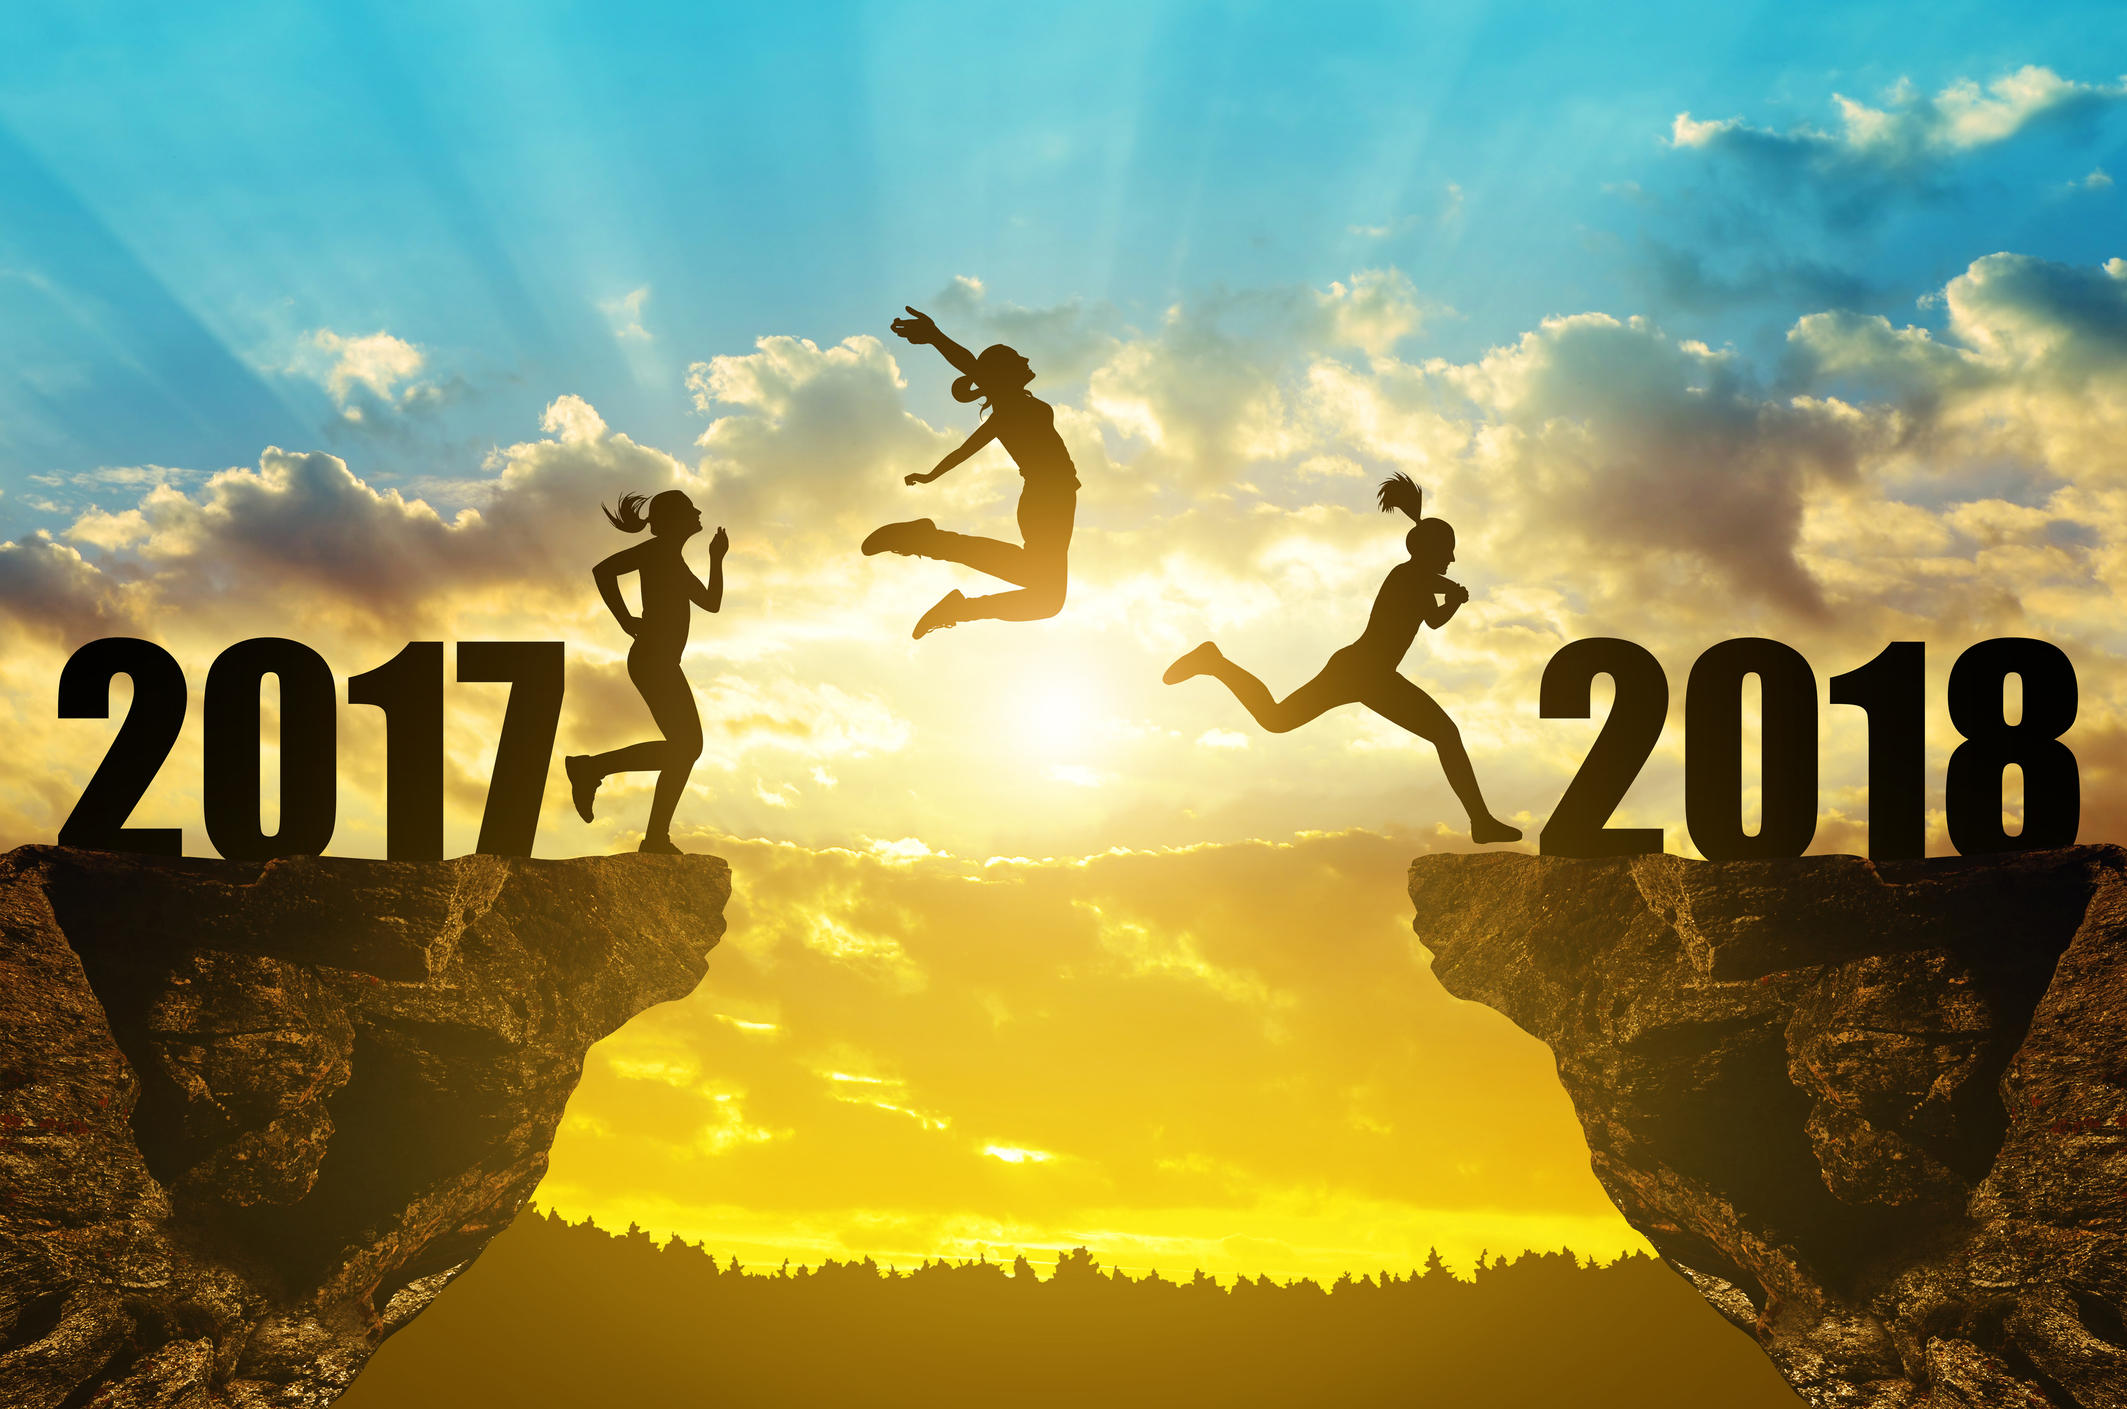 Jumping into 2018